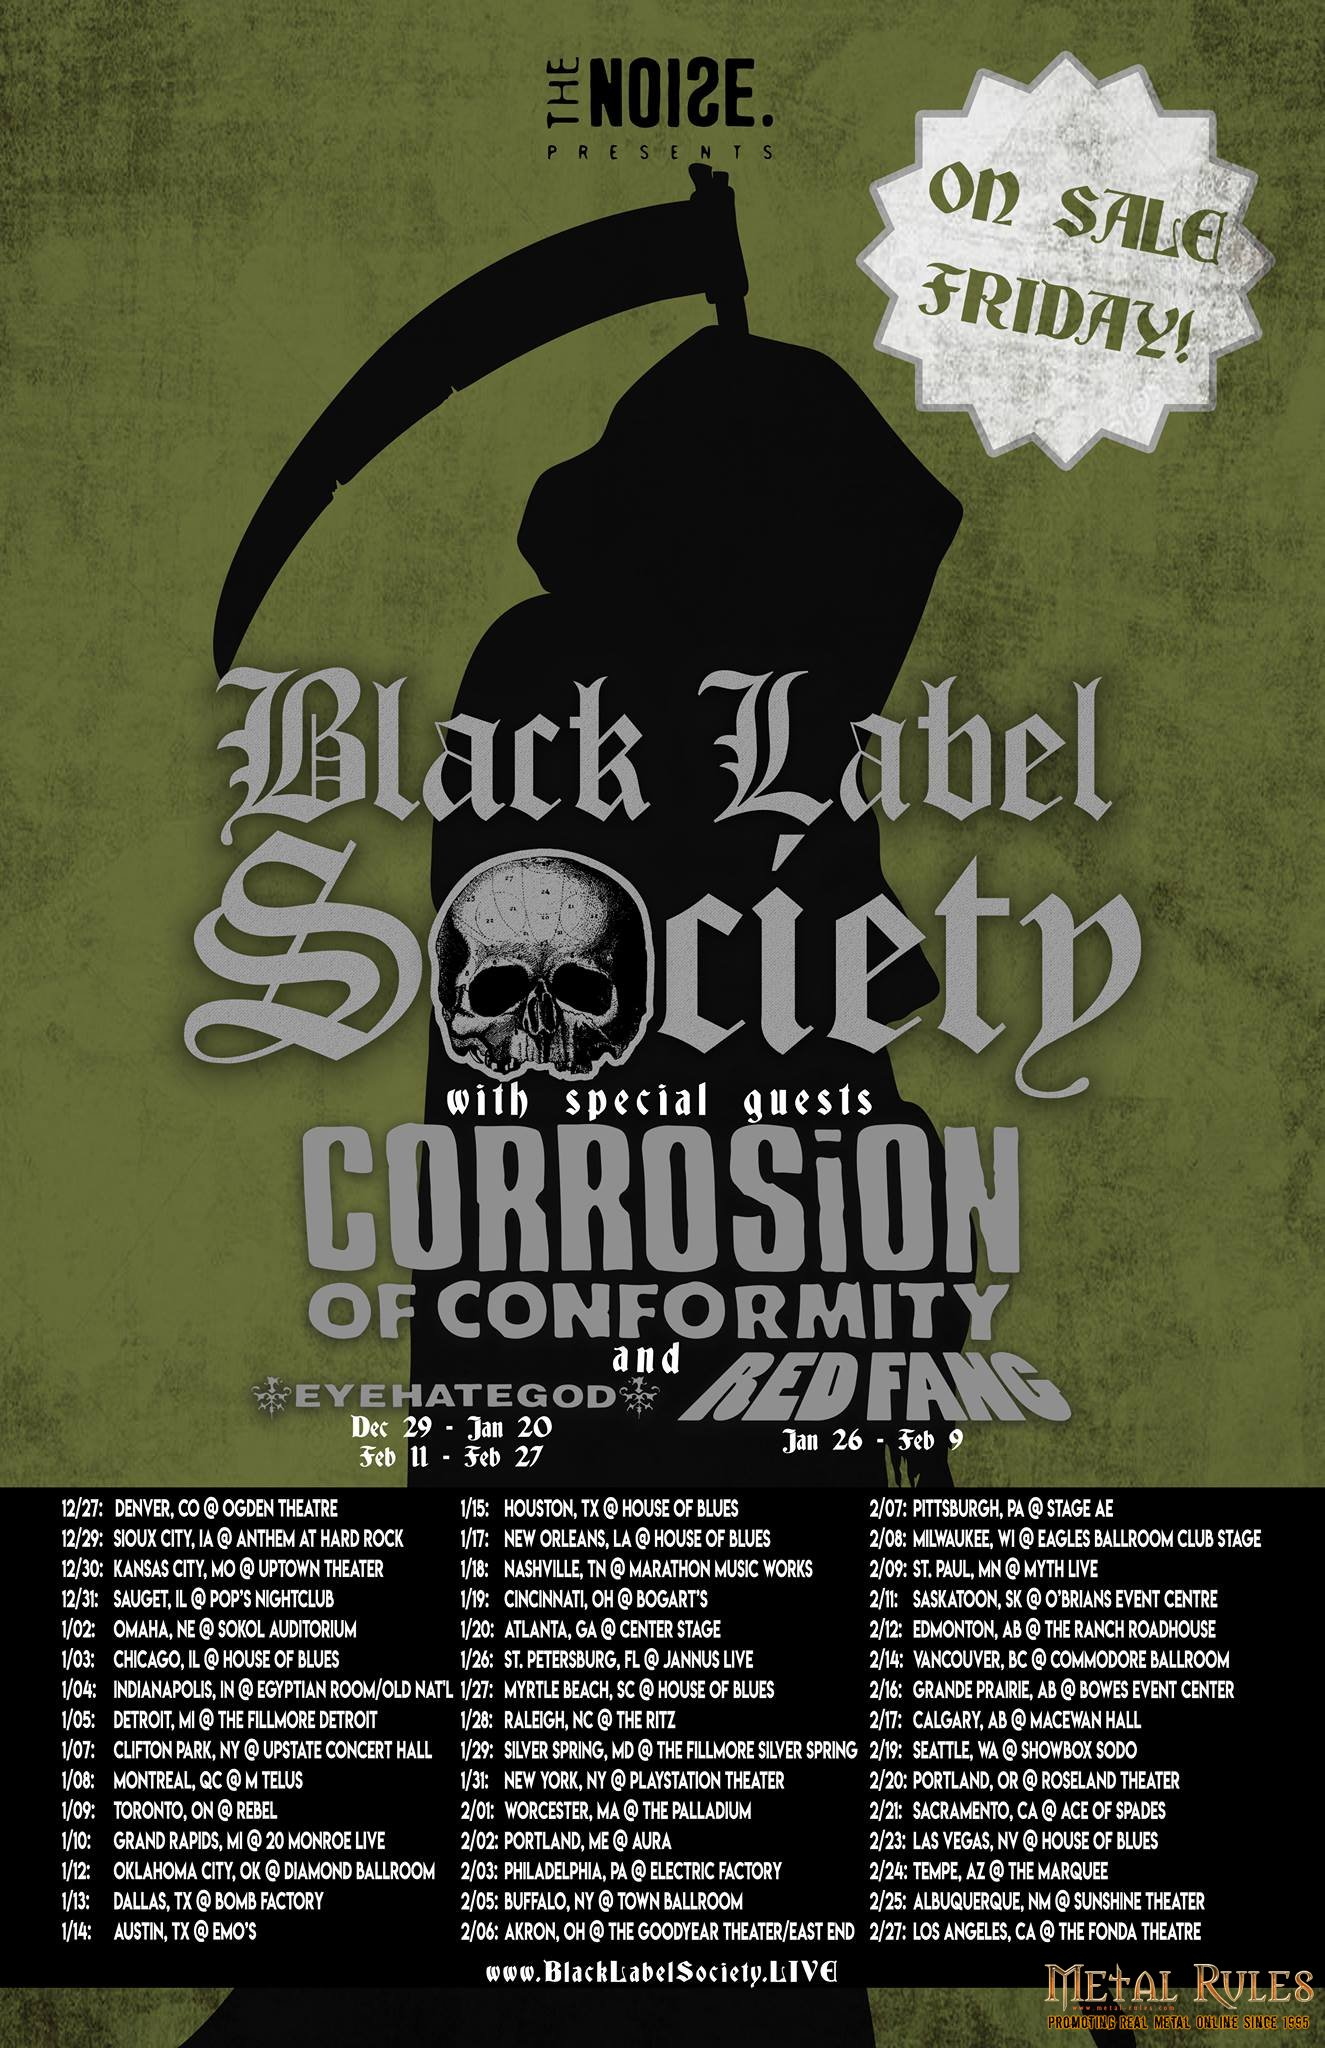 Gig Review Black Label Society Corrosion Of Conformity